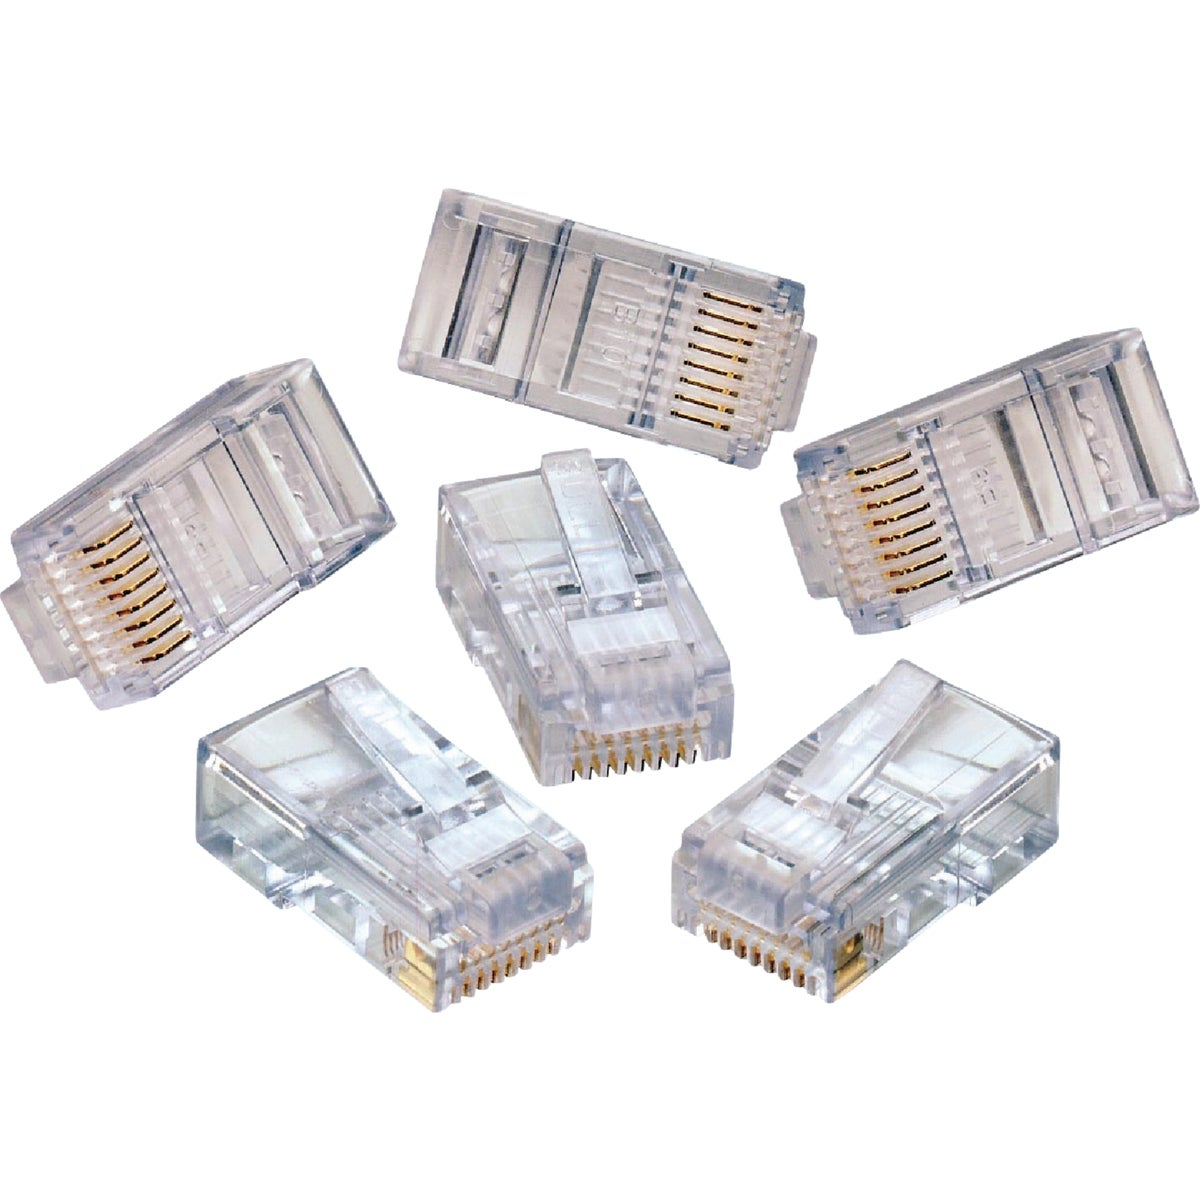 10PACK CAT5E CONNECTOR - 632-47613-EZR by Leviton Mfg Co